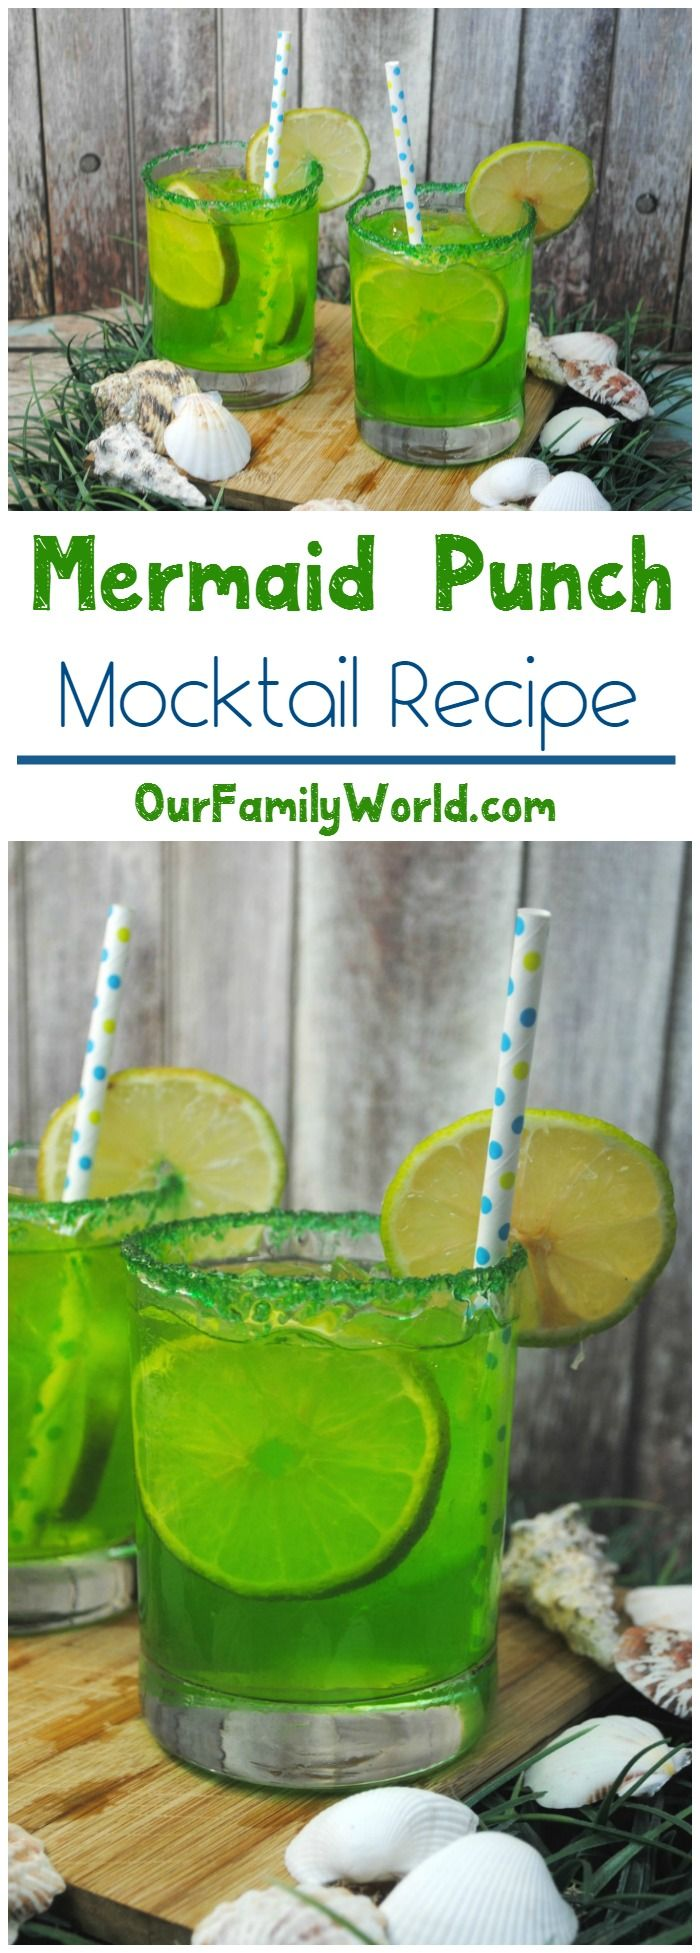 With warmer days ahead, it's time to start thinking about all those delicious summer drinks you'll enjoy while lounging on your deck! Plan a few unique non-alcoholic drinks for kids and yourself! Whip up our mermaid punch mocktails for kids, perfect for parties or just spending time reading together!